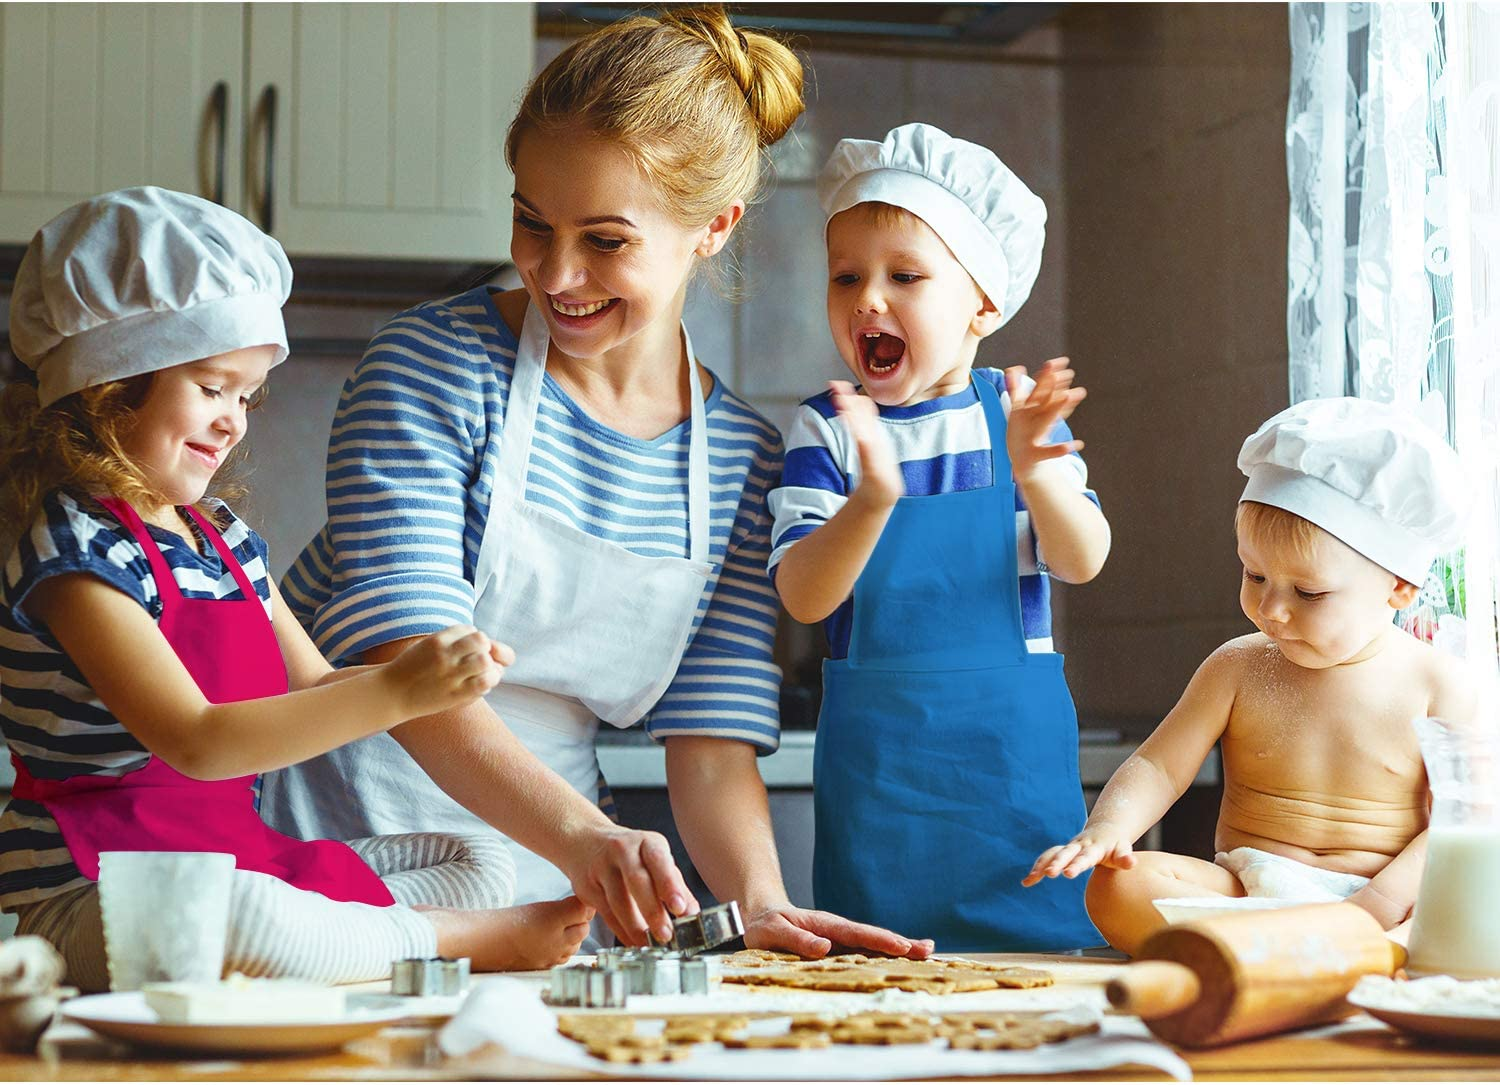 SATINIOR 12 Pieces Kids Apron Adjustable Children Aprons Kids Chef Cooking Baking Aprons Kids Painting Kitchen Apron with Pocket for Boys and Girls Multi-Color, L for 7-13 Age